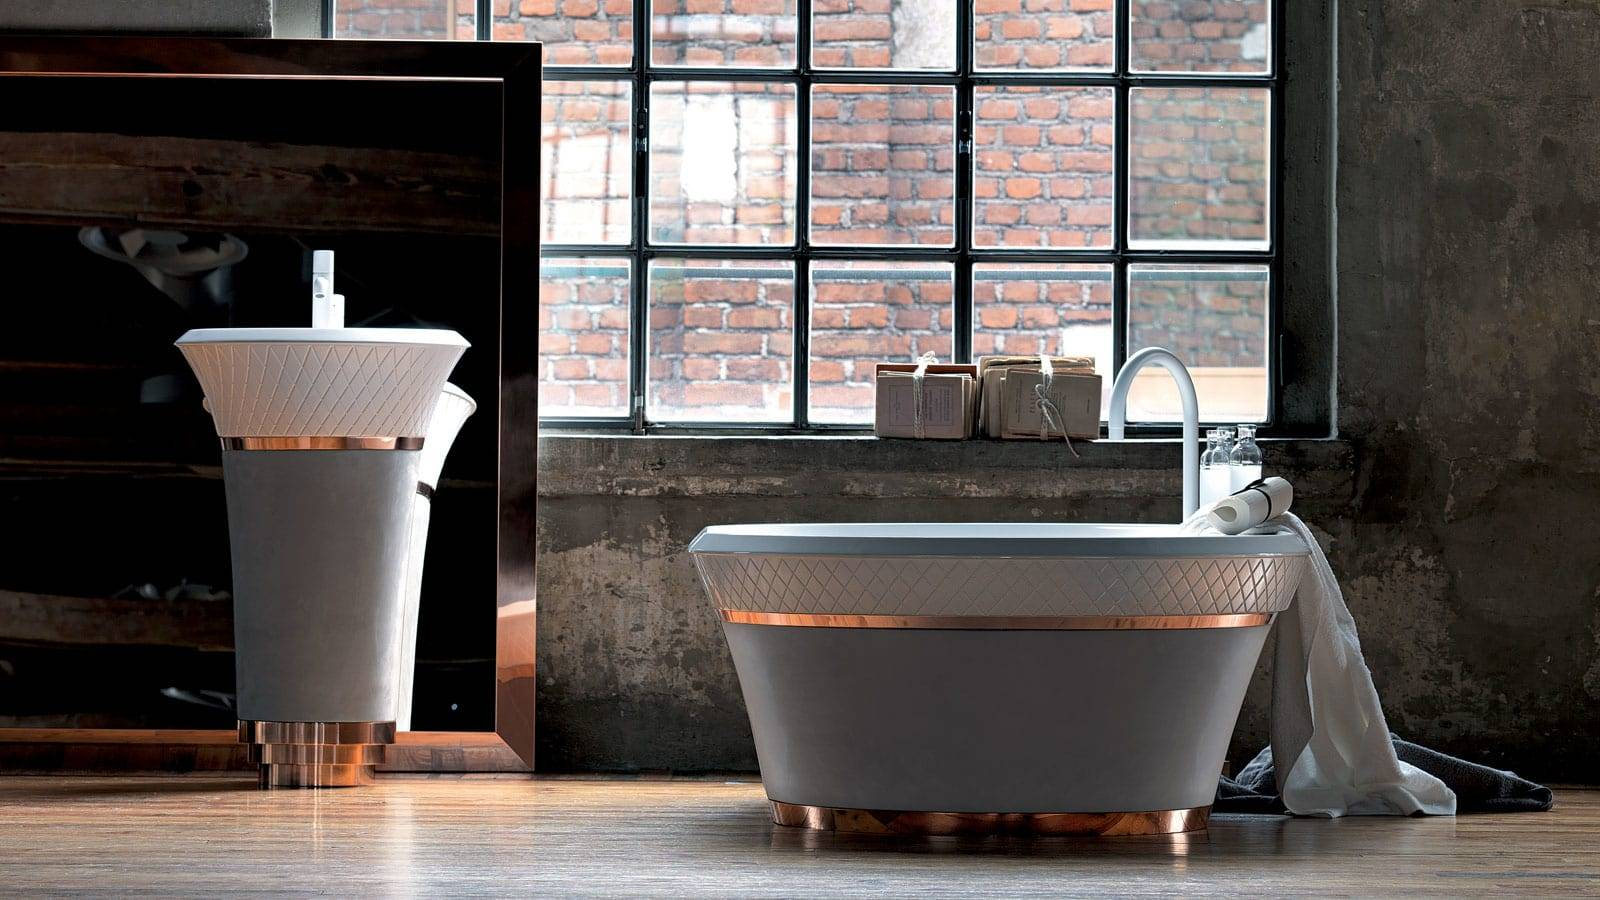 contemporary bathroom furniture by Michael Schmidt for Falper